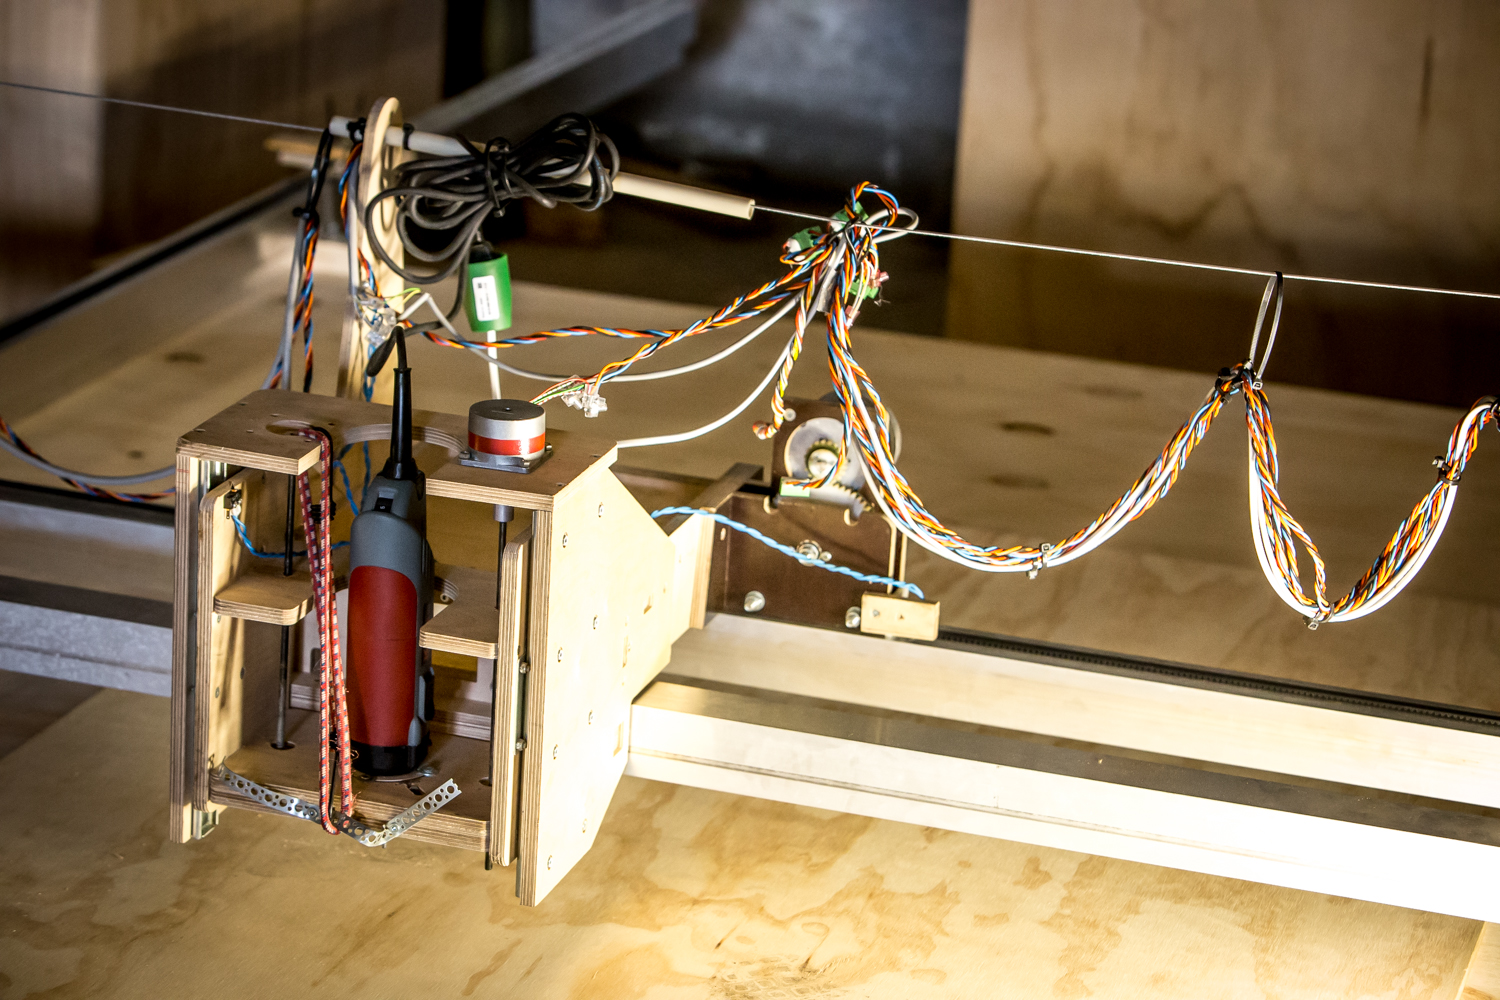 Open source extra large CNC